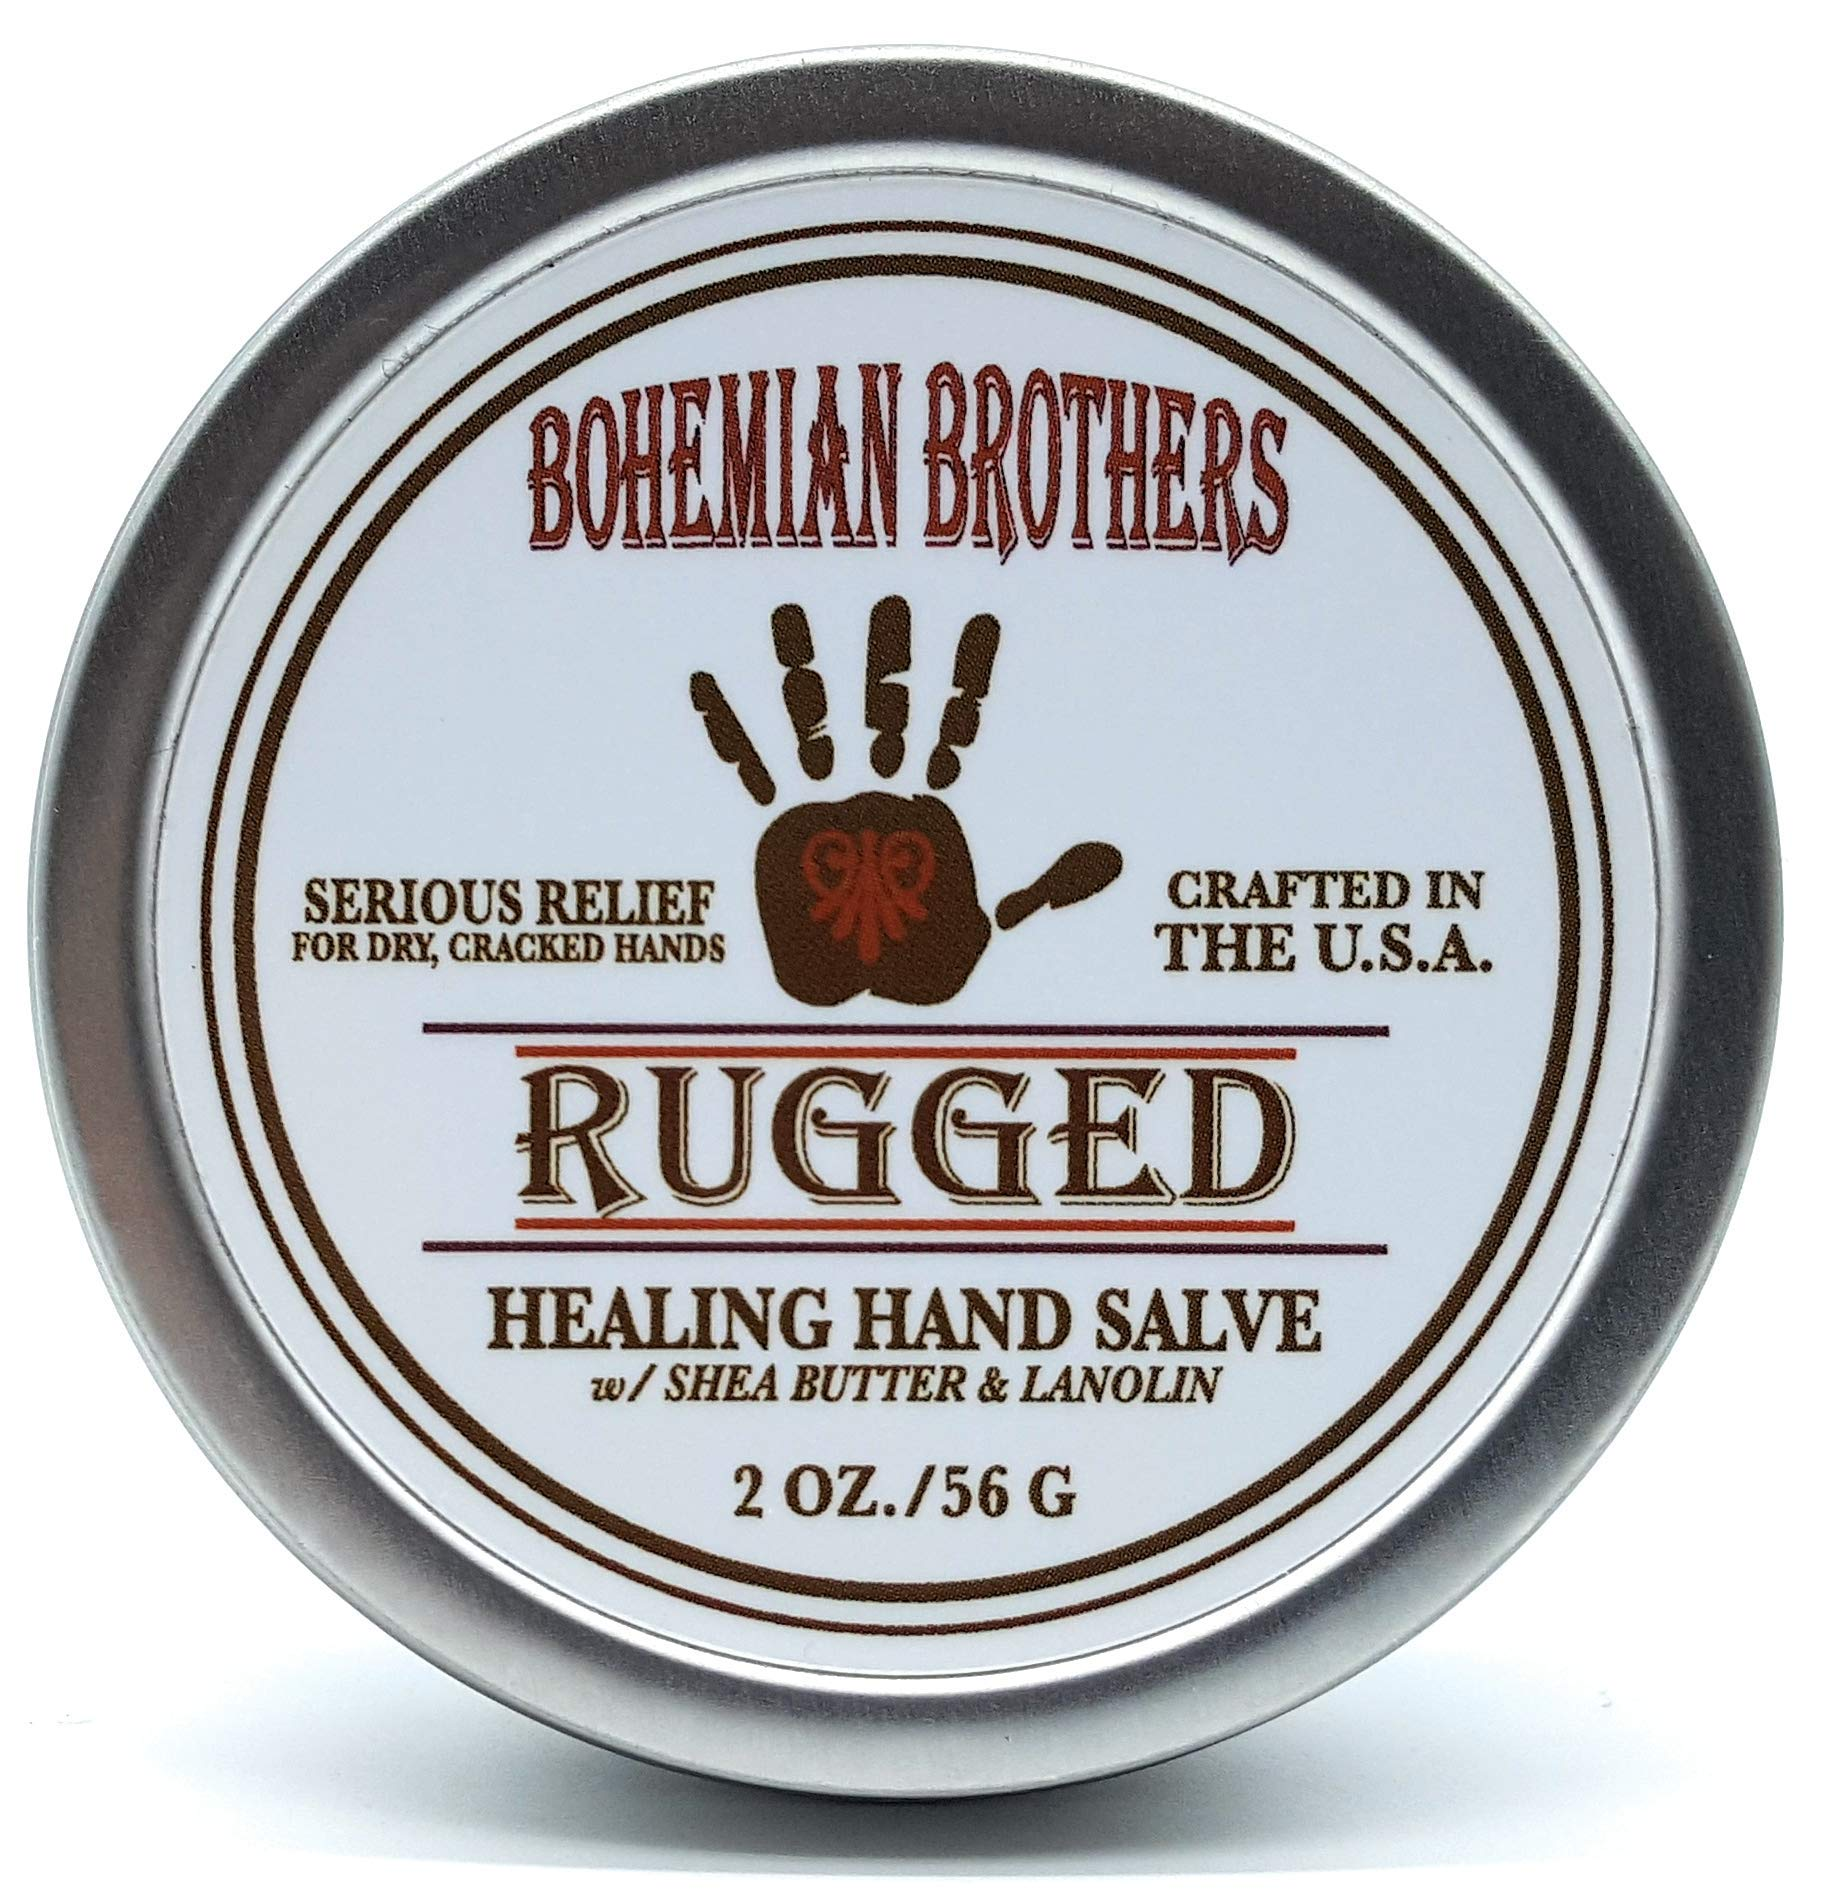 Serious Relief for Dry, Cracked Hands. Bohemian Brothers Natural Hand Salve(Ointment, Creme). Formulated with Lanolin, Cocoa Butter, and Vitamin E. Soothes and Protects Dry Chapped Skin. by Bohemian Brothers